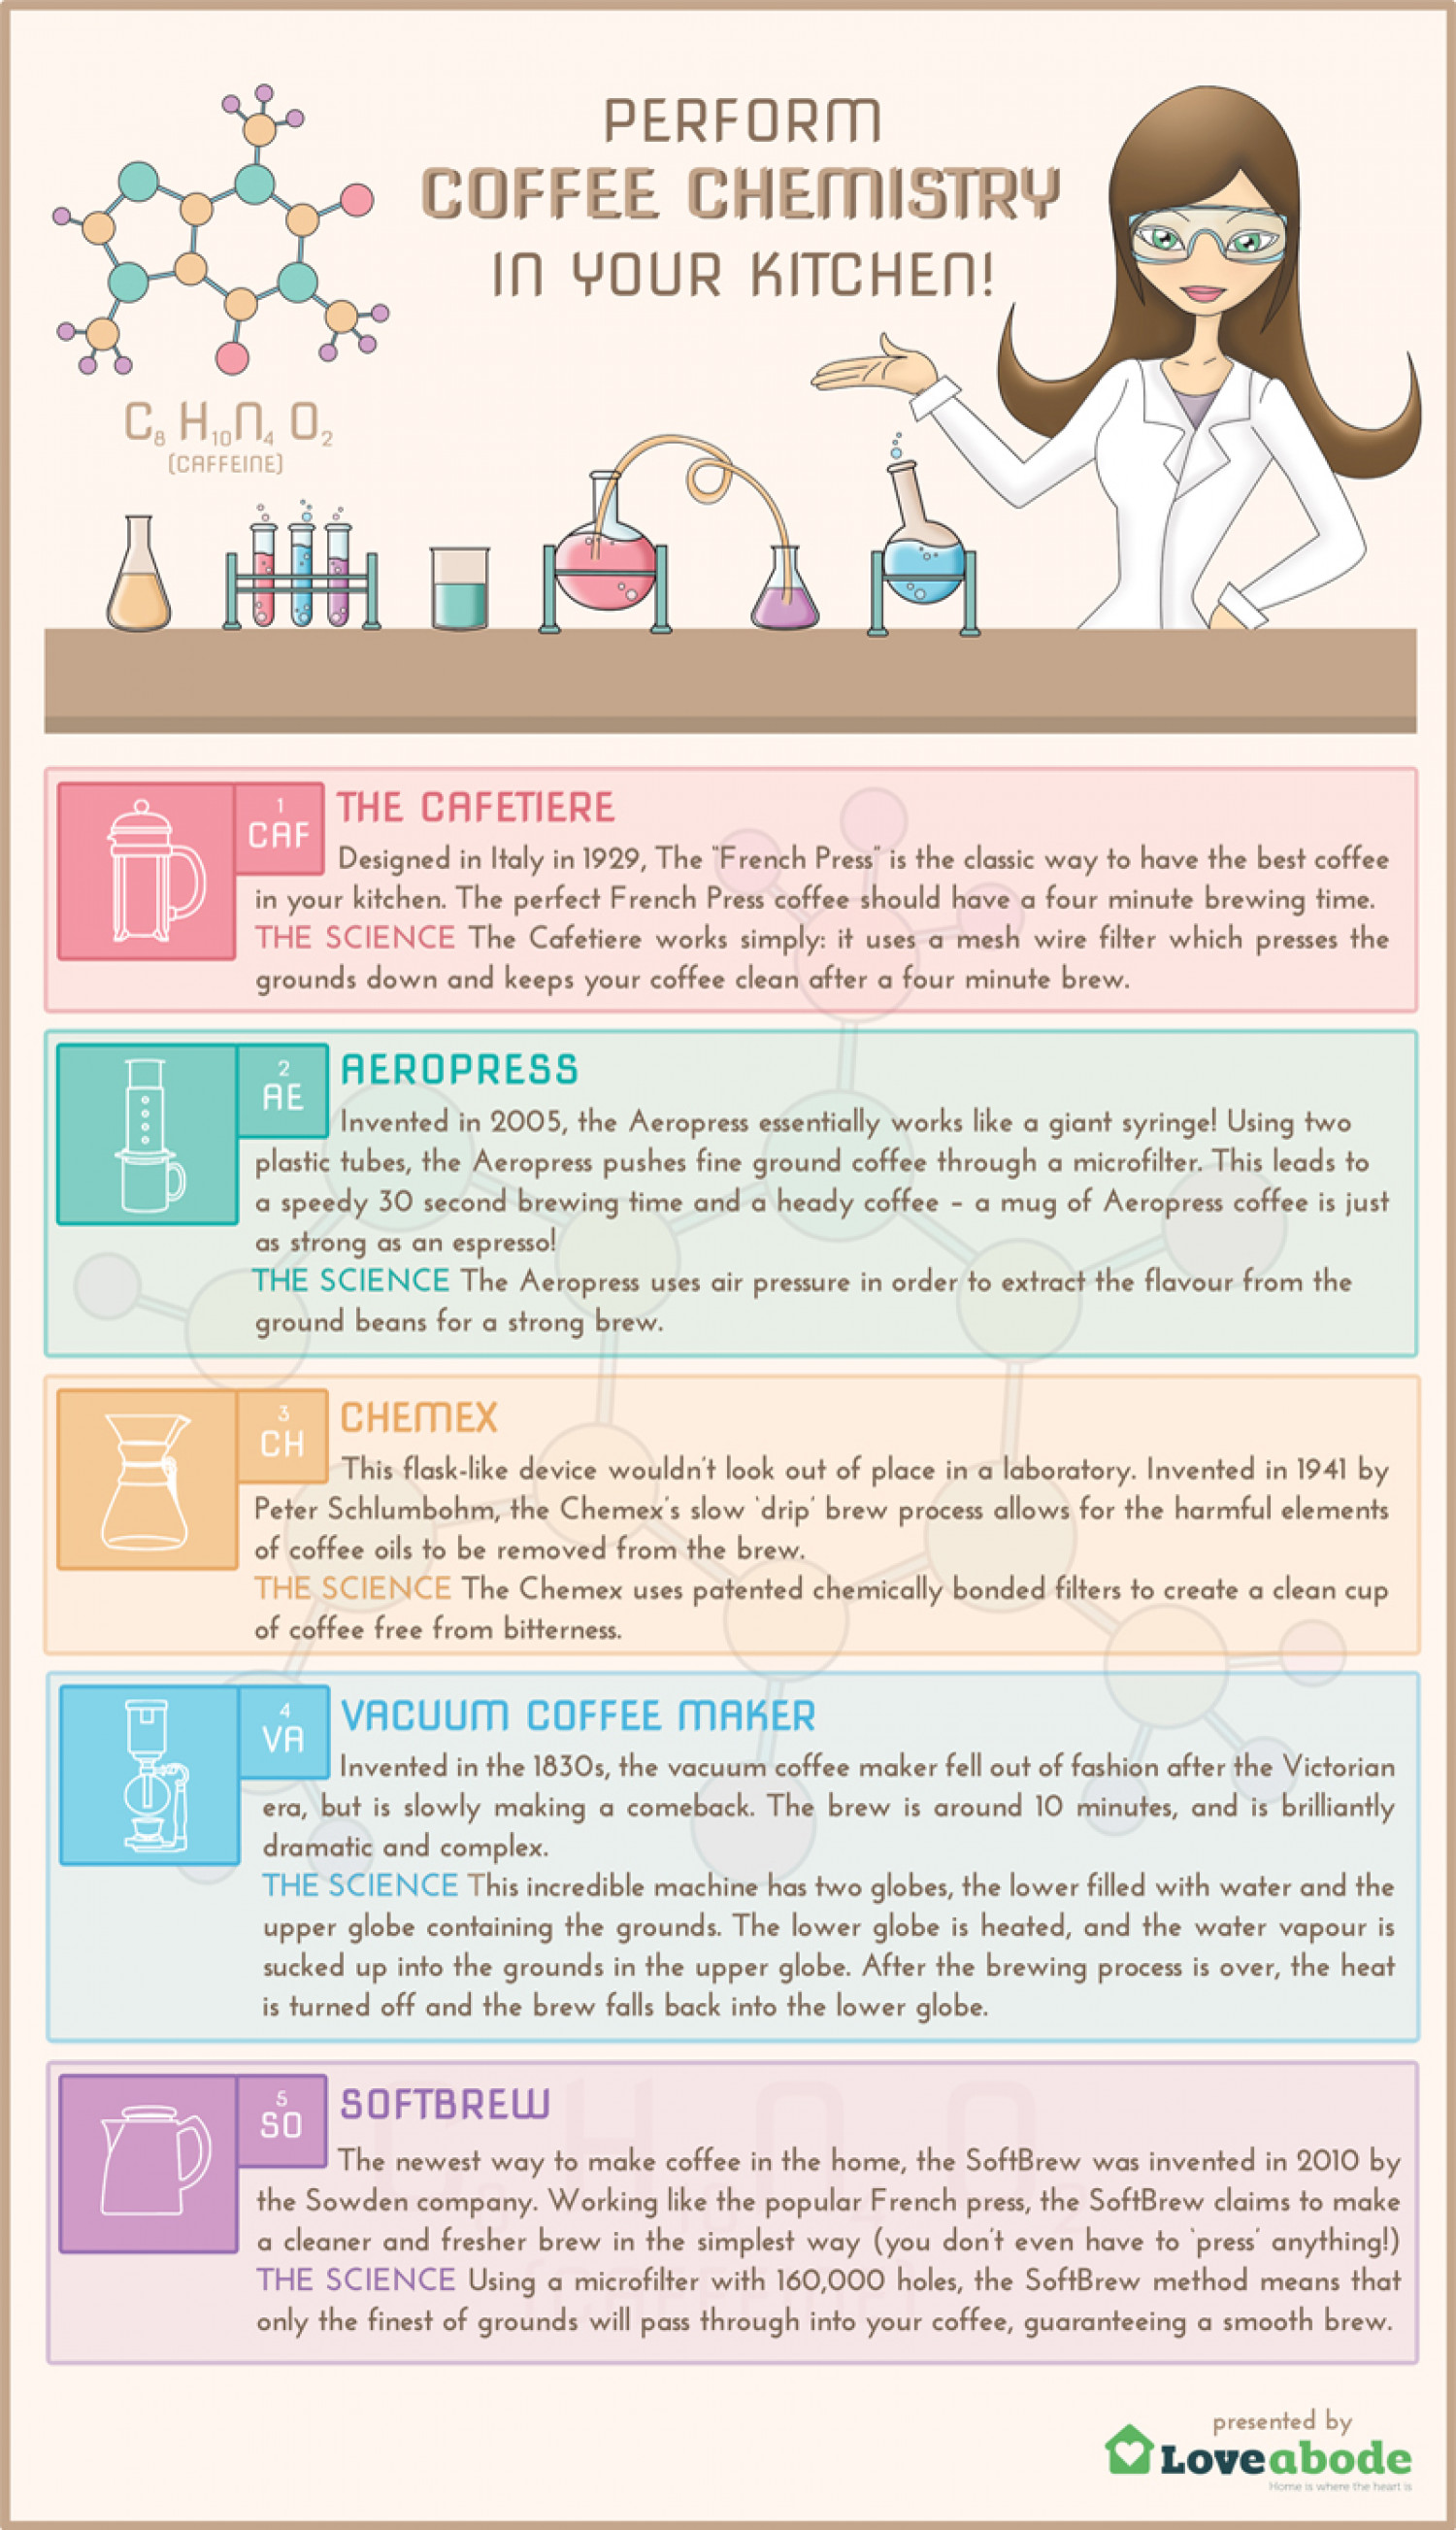 How to Perform Coffee Chemistry in Your Kitchen Infographic